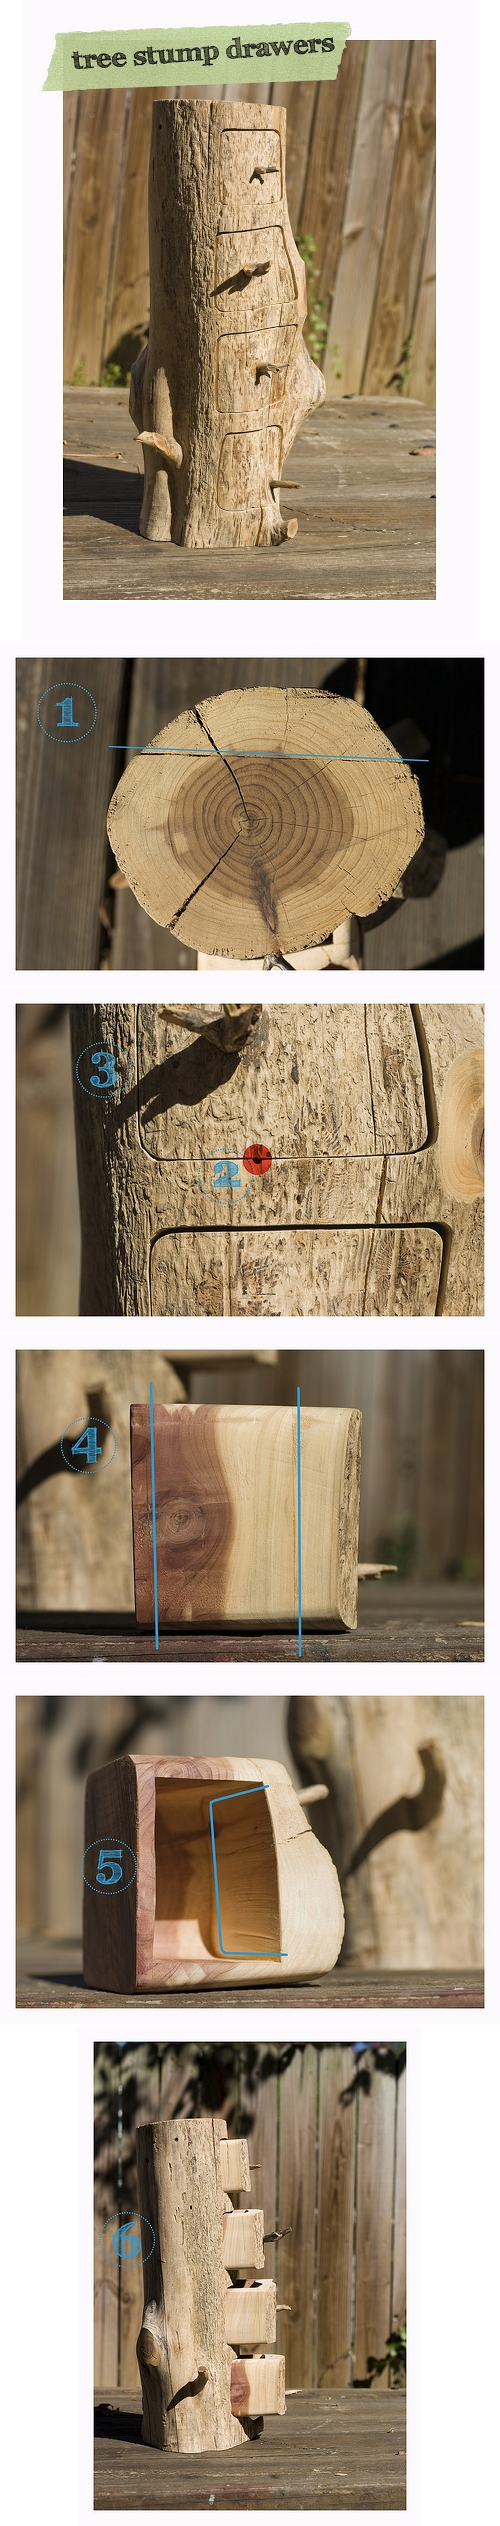 How to make cool DIY drawers with tree stumps step by step tutorial instructions